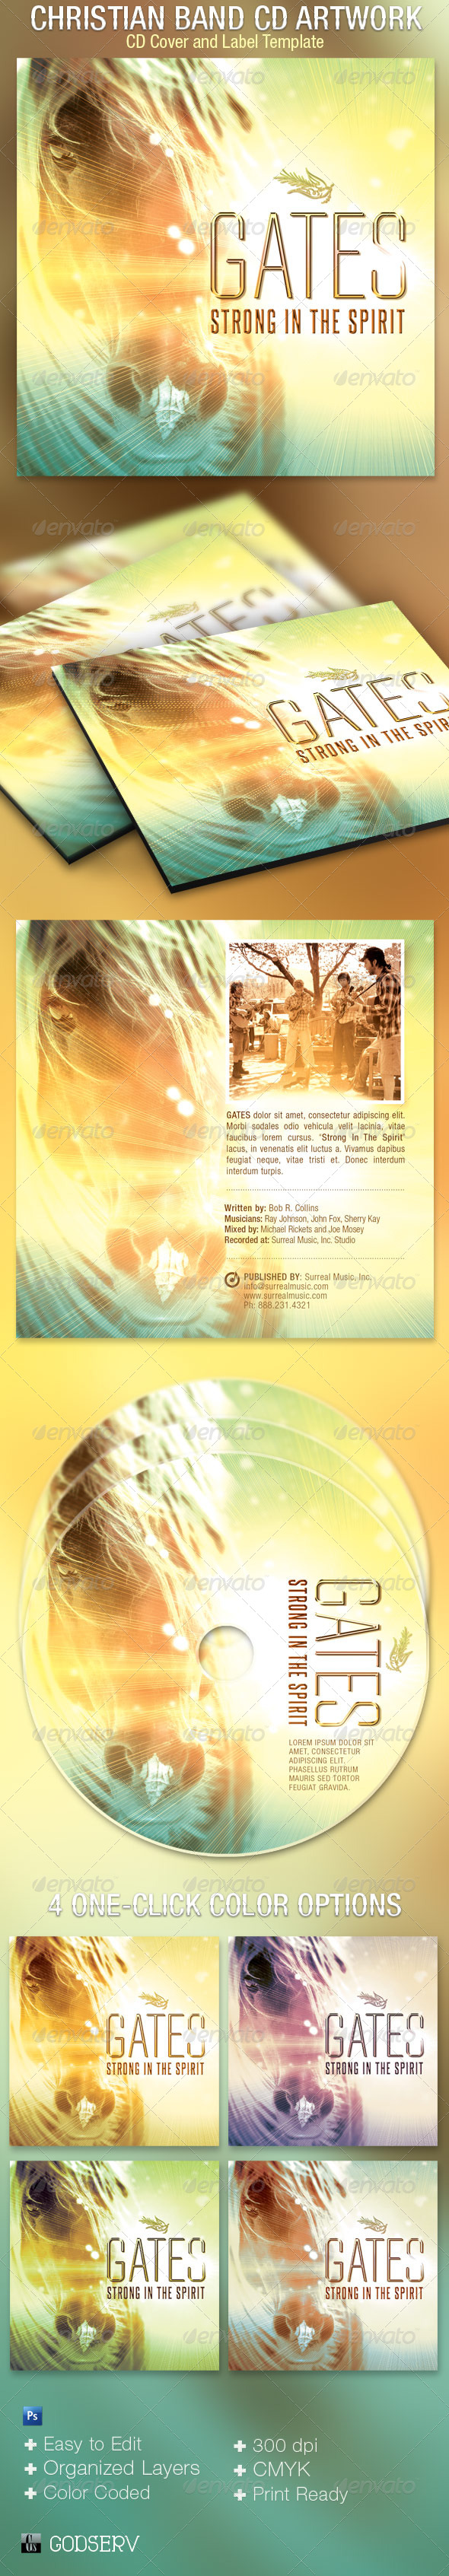 Christian Band CD Artwork Template - CD & DVD Artwork Print Templates